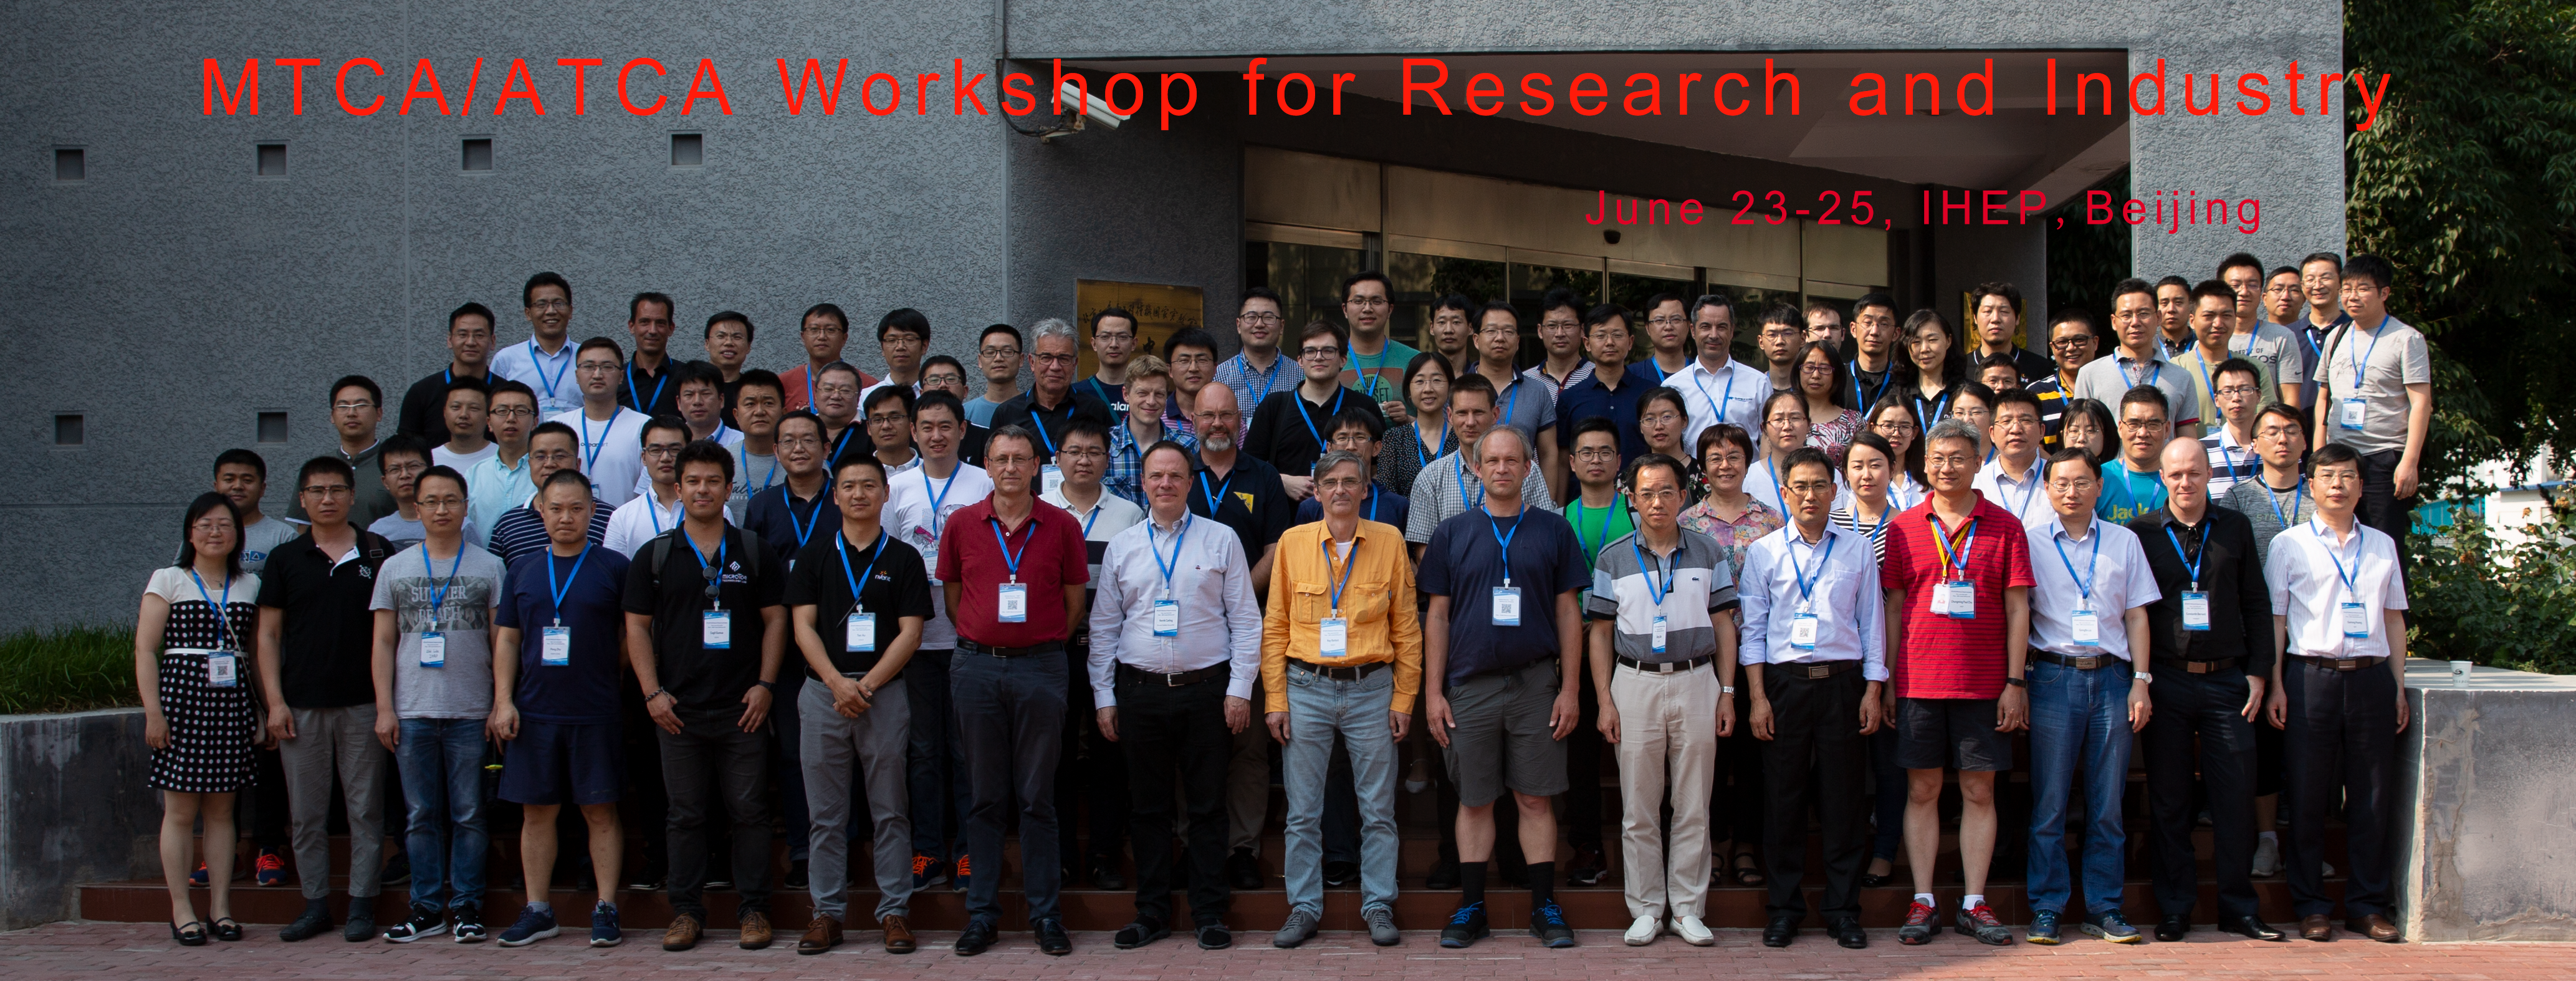 MTCA/ATCA Workshop for Research and Industry (23-June 25, 2019)